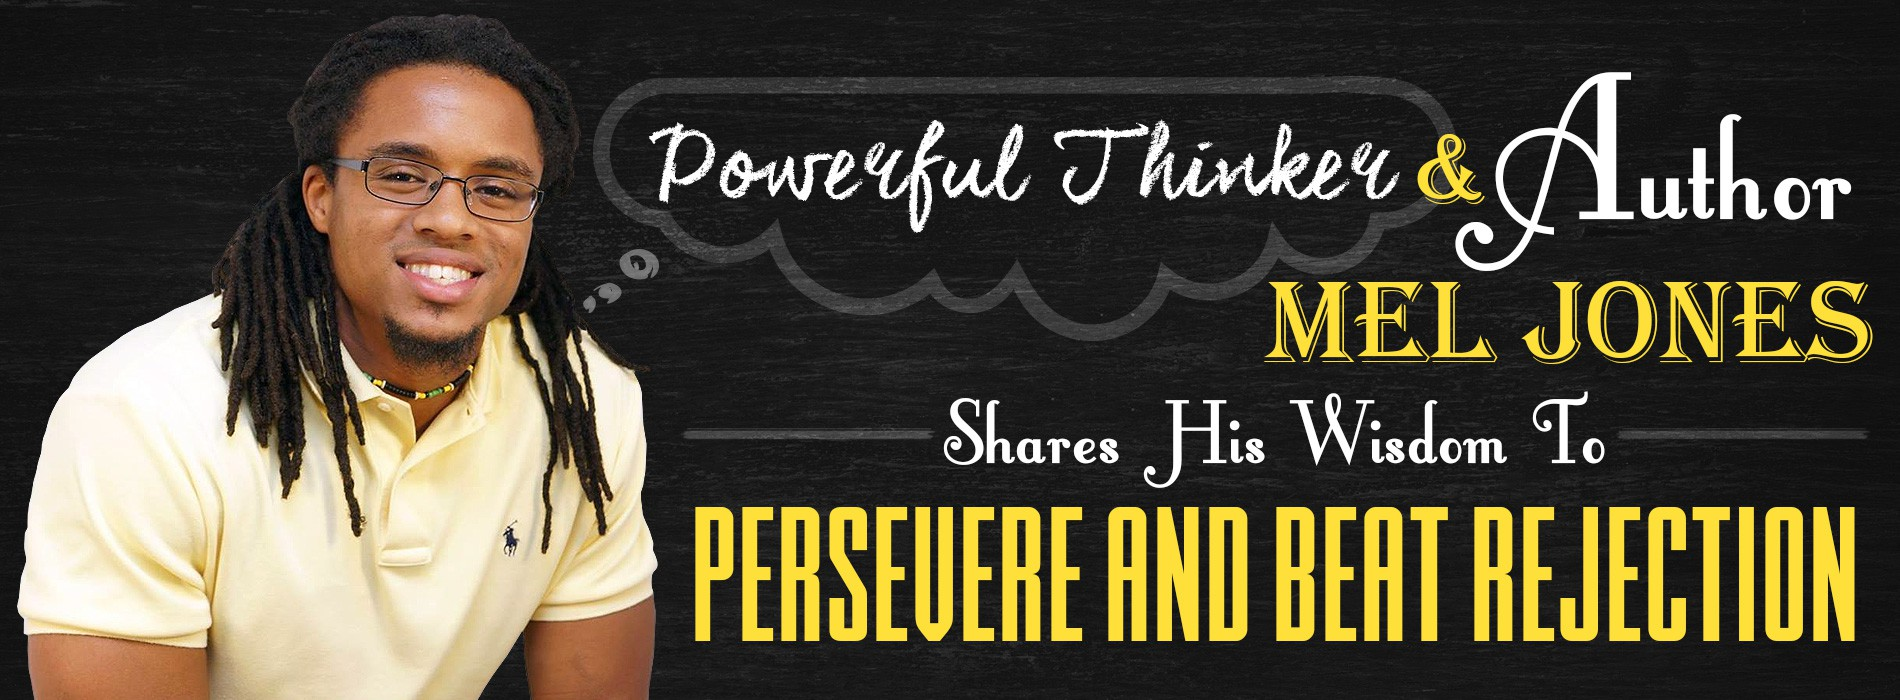 1900 x 700 Product Banner For Powerful Thinker and Author Mel Jones Shares His Wisdom To Persevere a